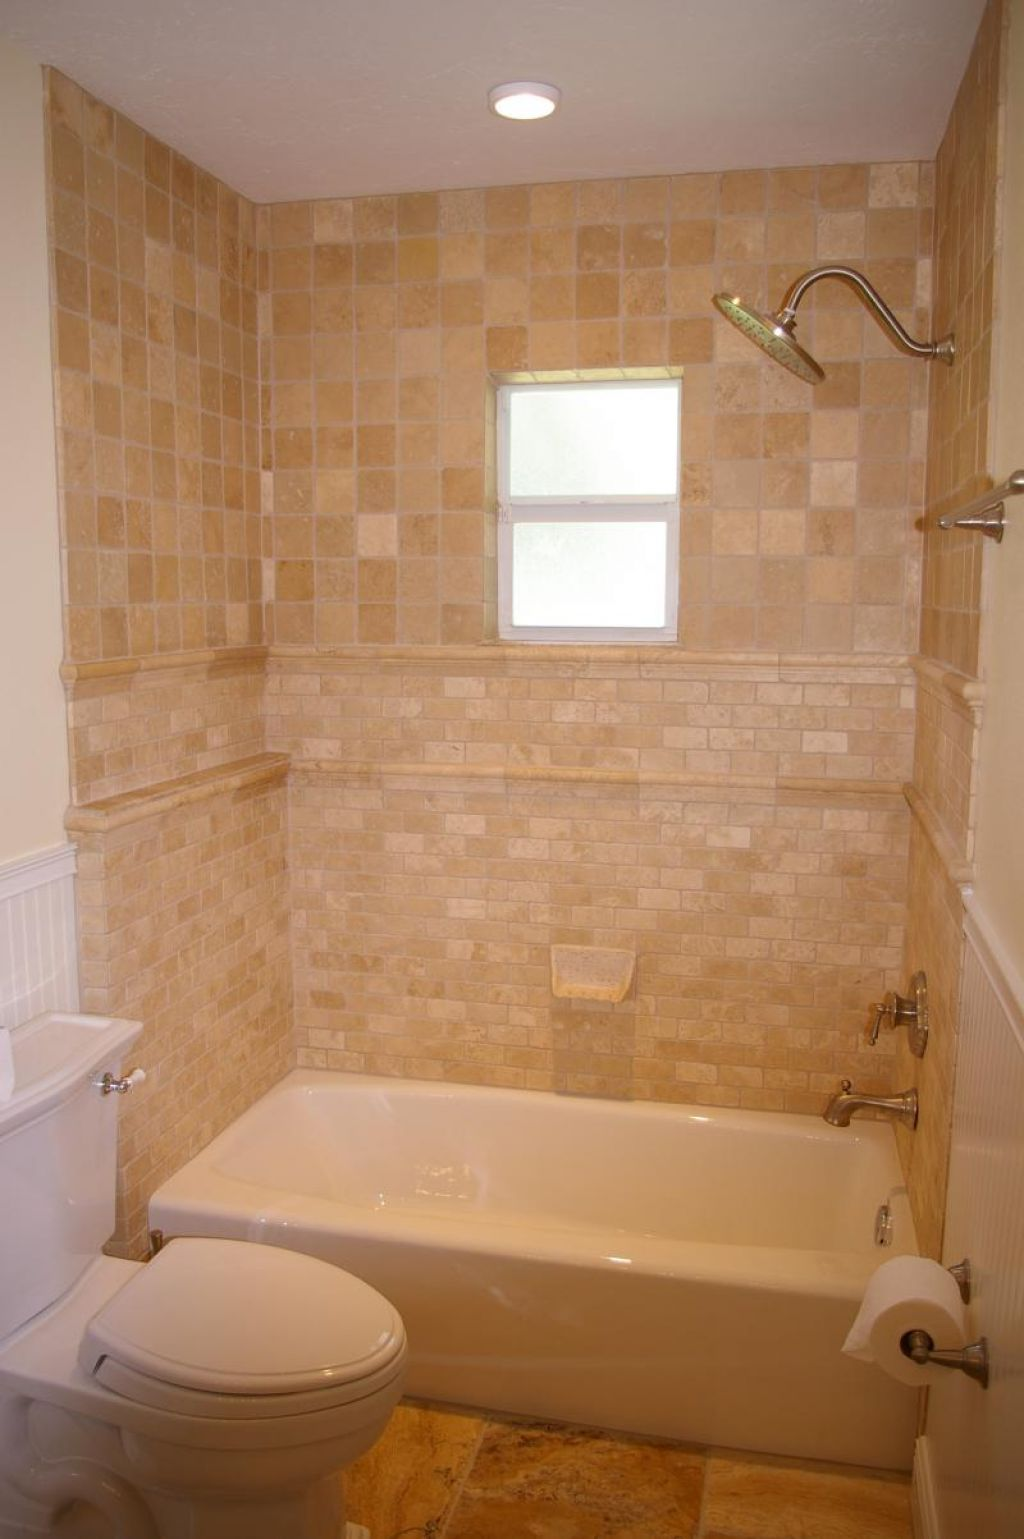 narrow-bathroom-design-with-nice-creme-wall-tiles-and-small-tub